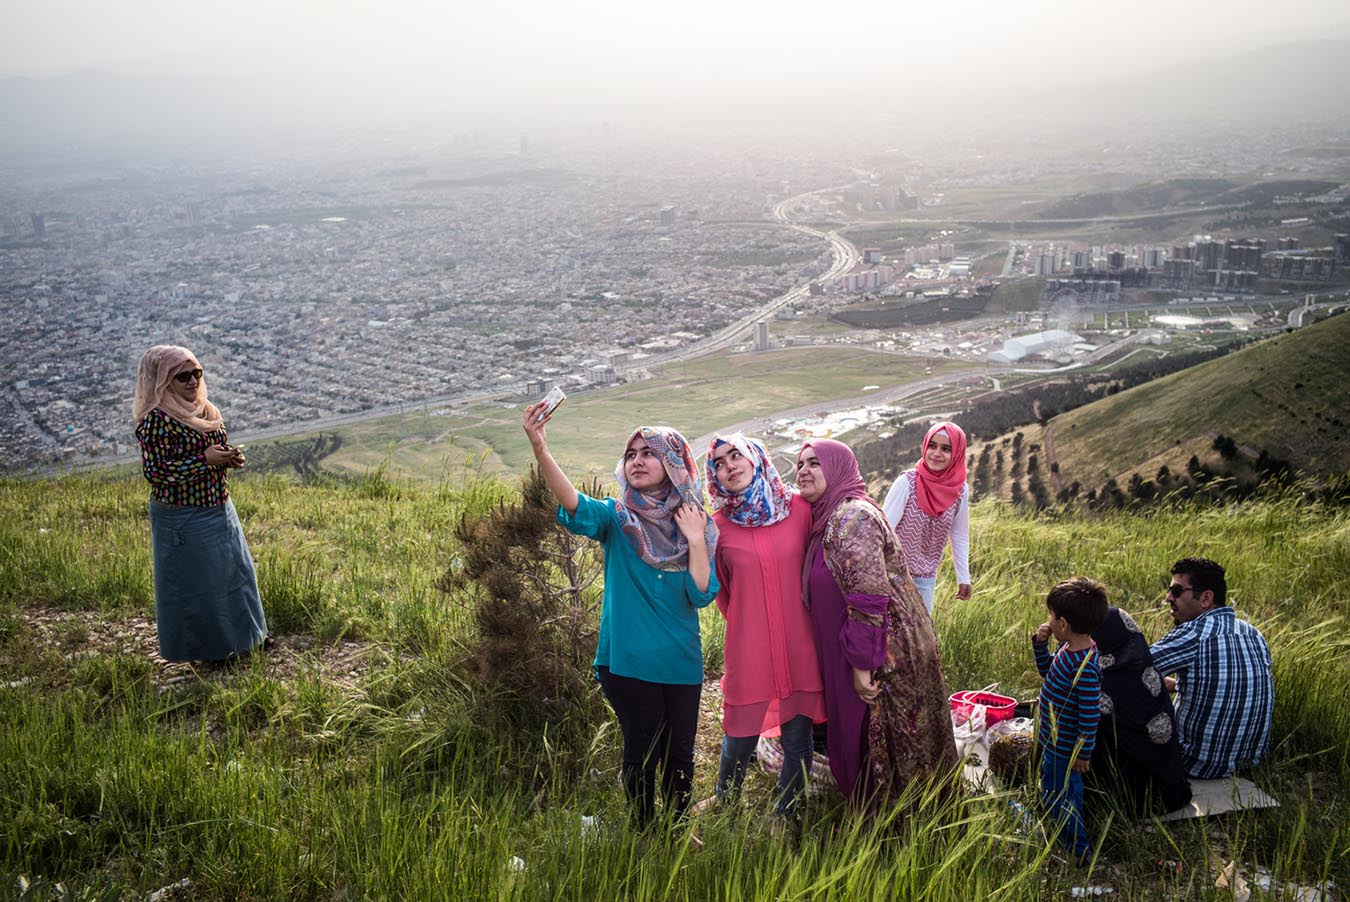 A family take selfie photo with view of Suleymaniyah from Azmar Mountain.